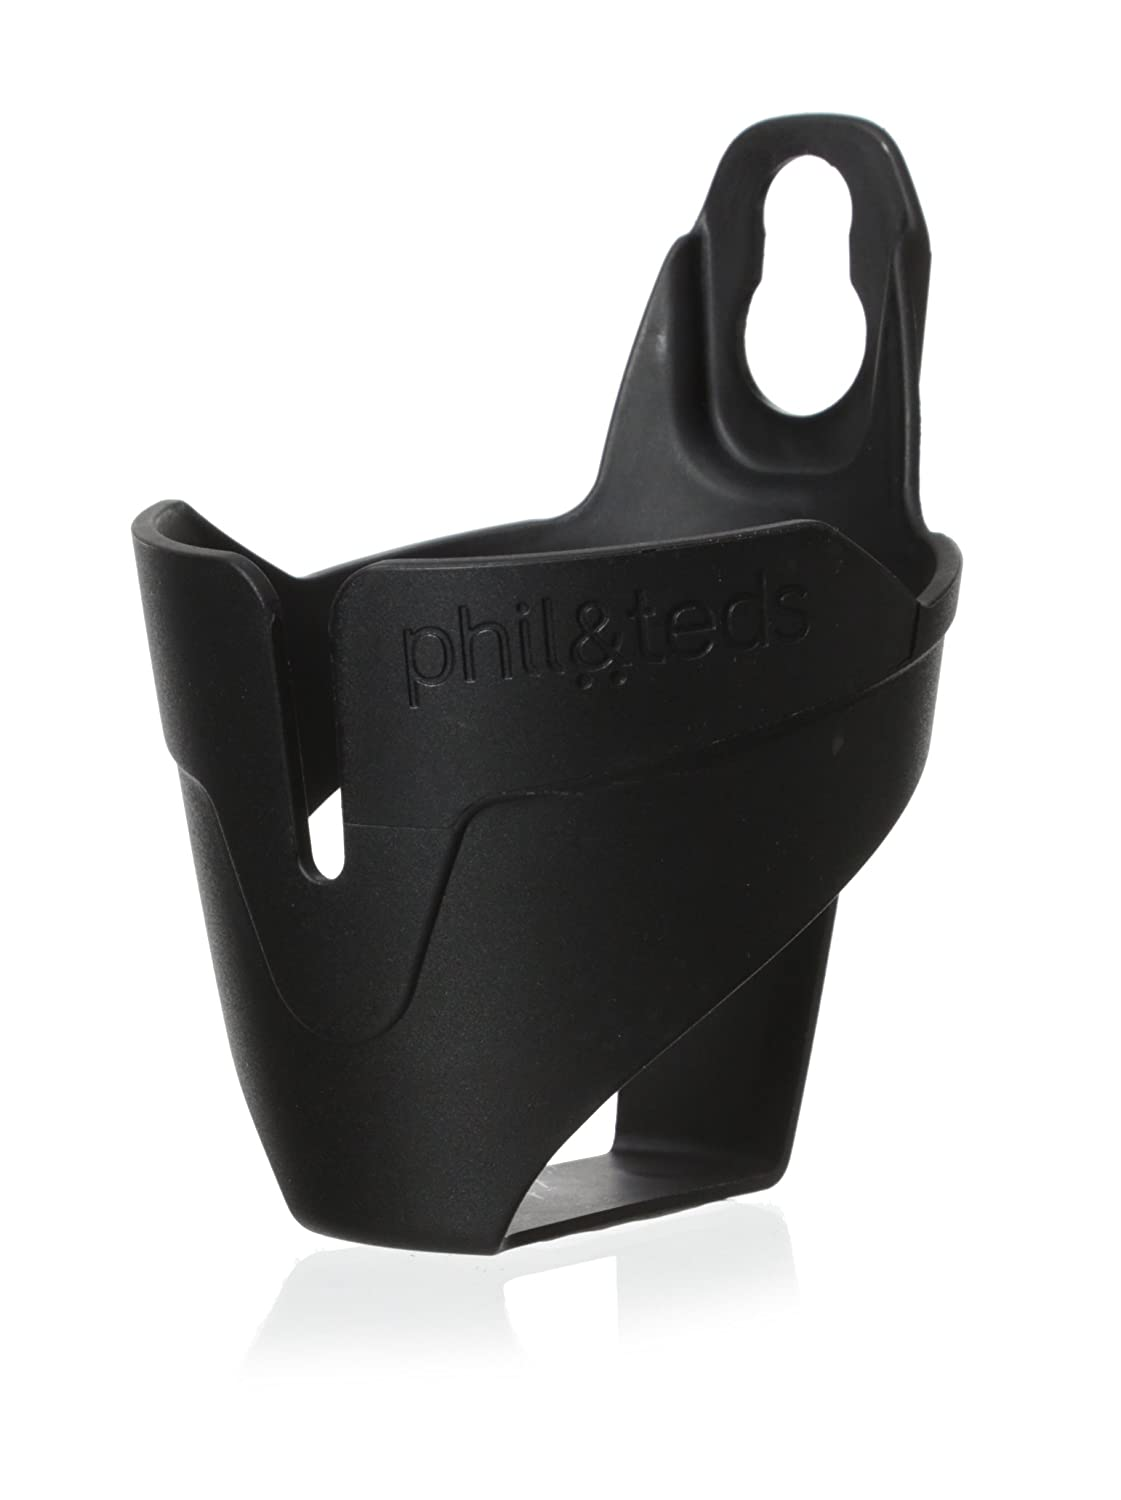 phil&teds Cup Holder for Navigator, Classic, Vibe, Verve, Smart, Smart Lux, Promenade, Dot, S4, S3 and Explorer Strollers